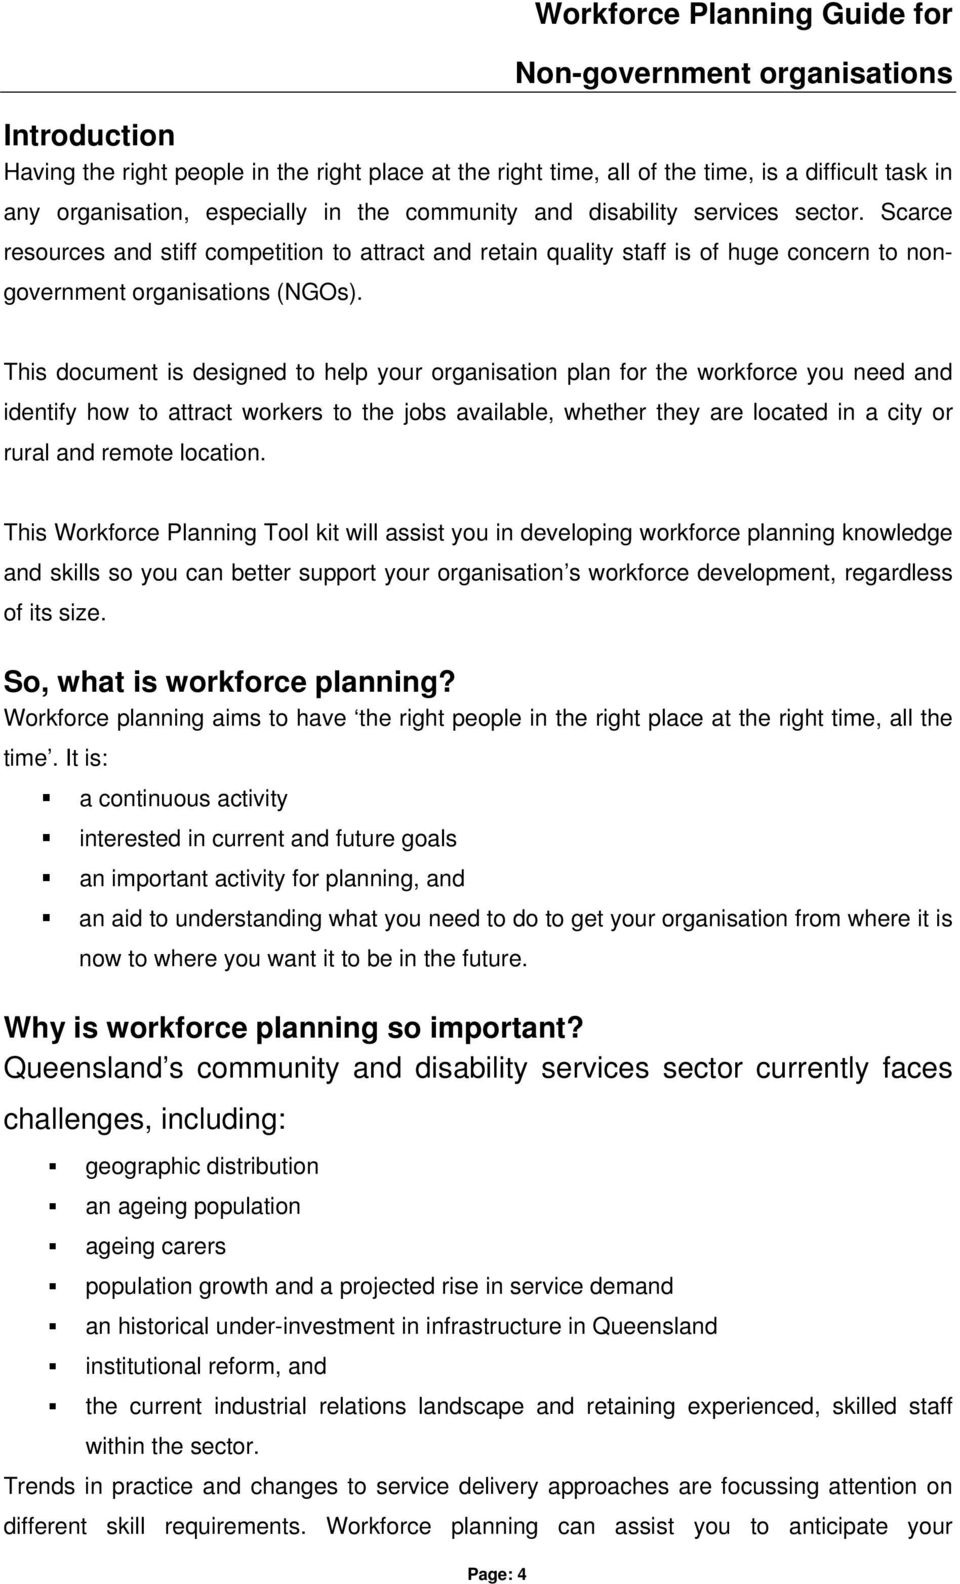 This document is designed to help your organisation plan for the workforce you need and identify how to attract workers to the jobs available, whether they are located in a city or rural and remote